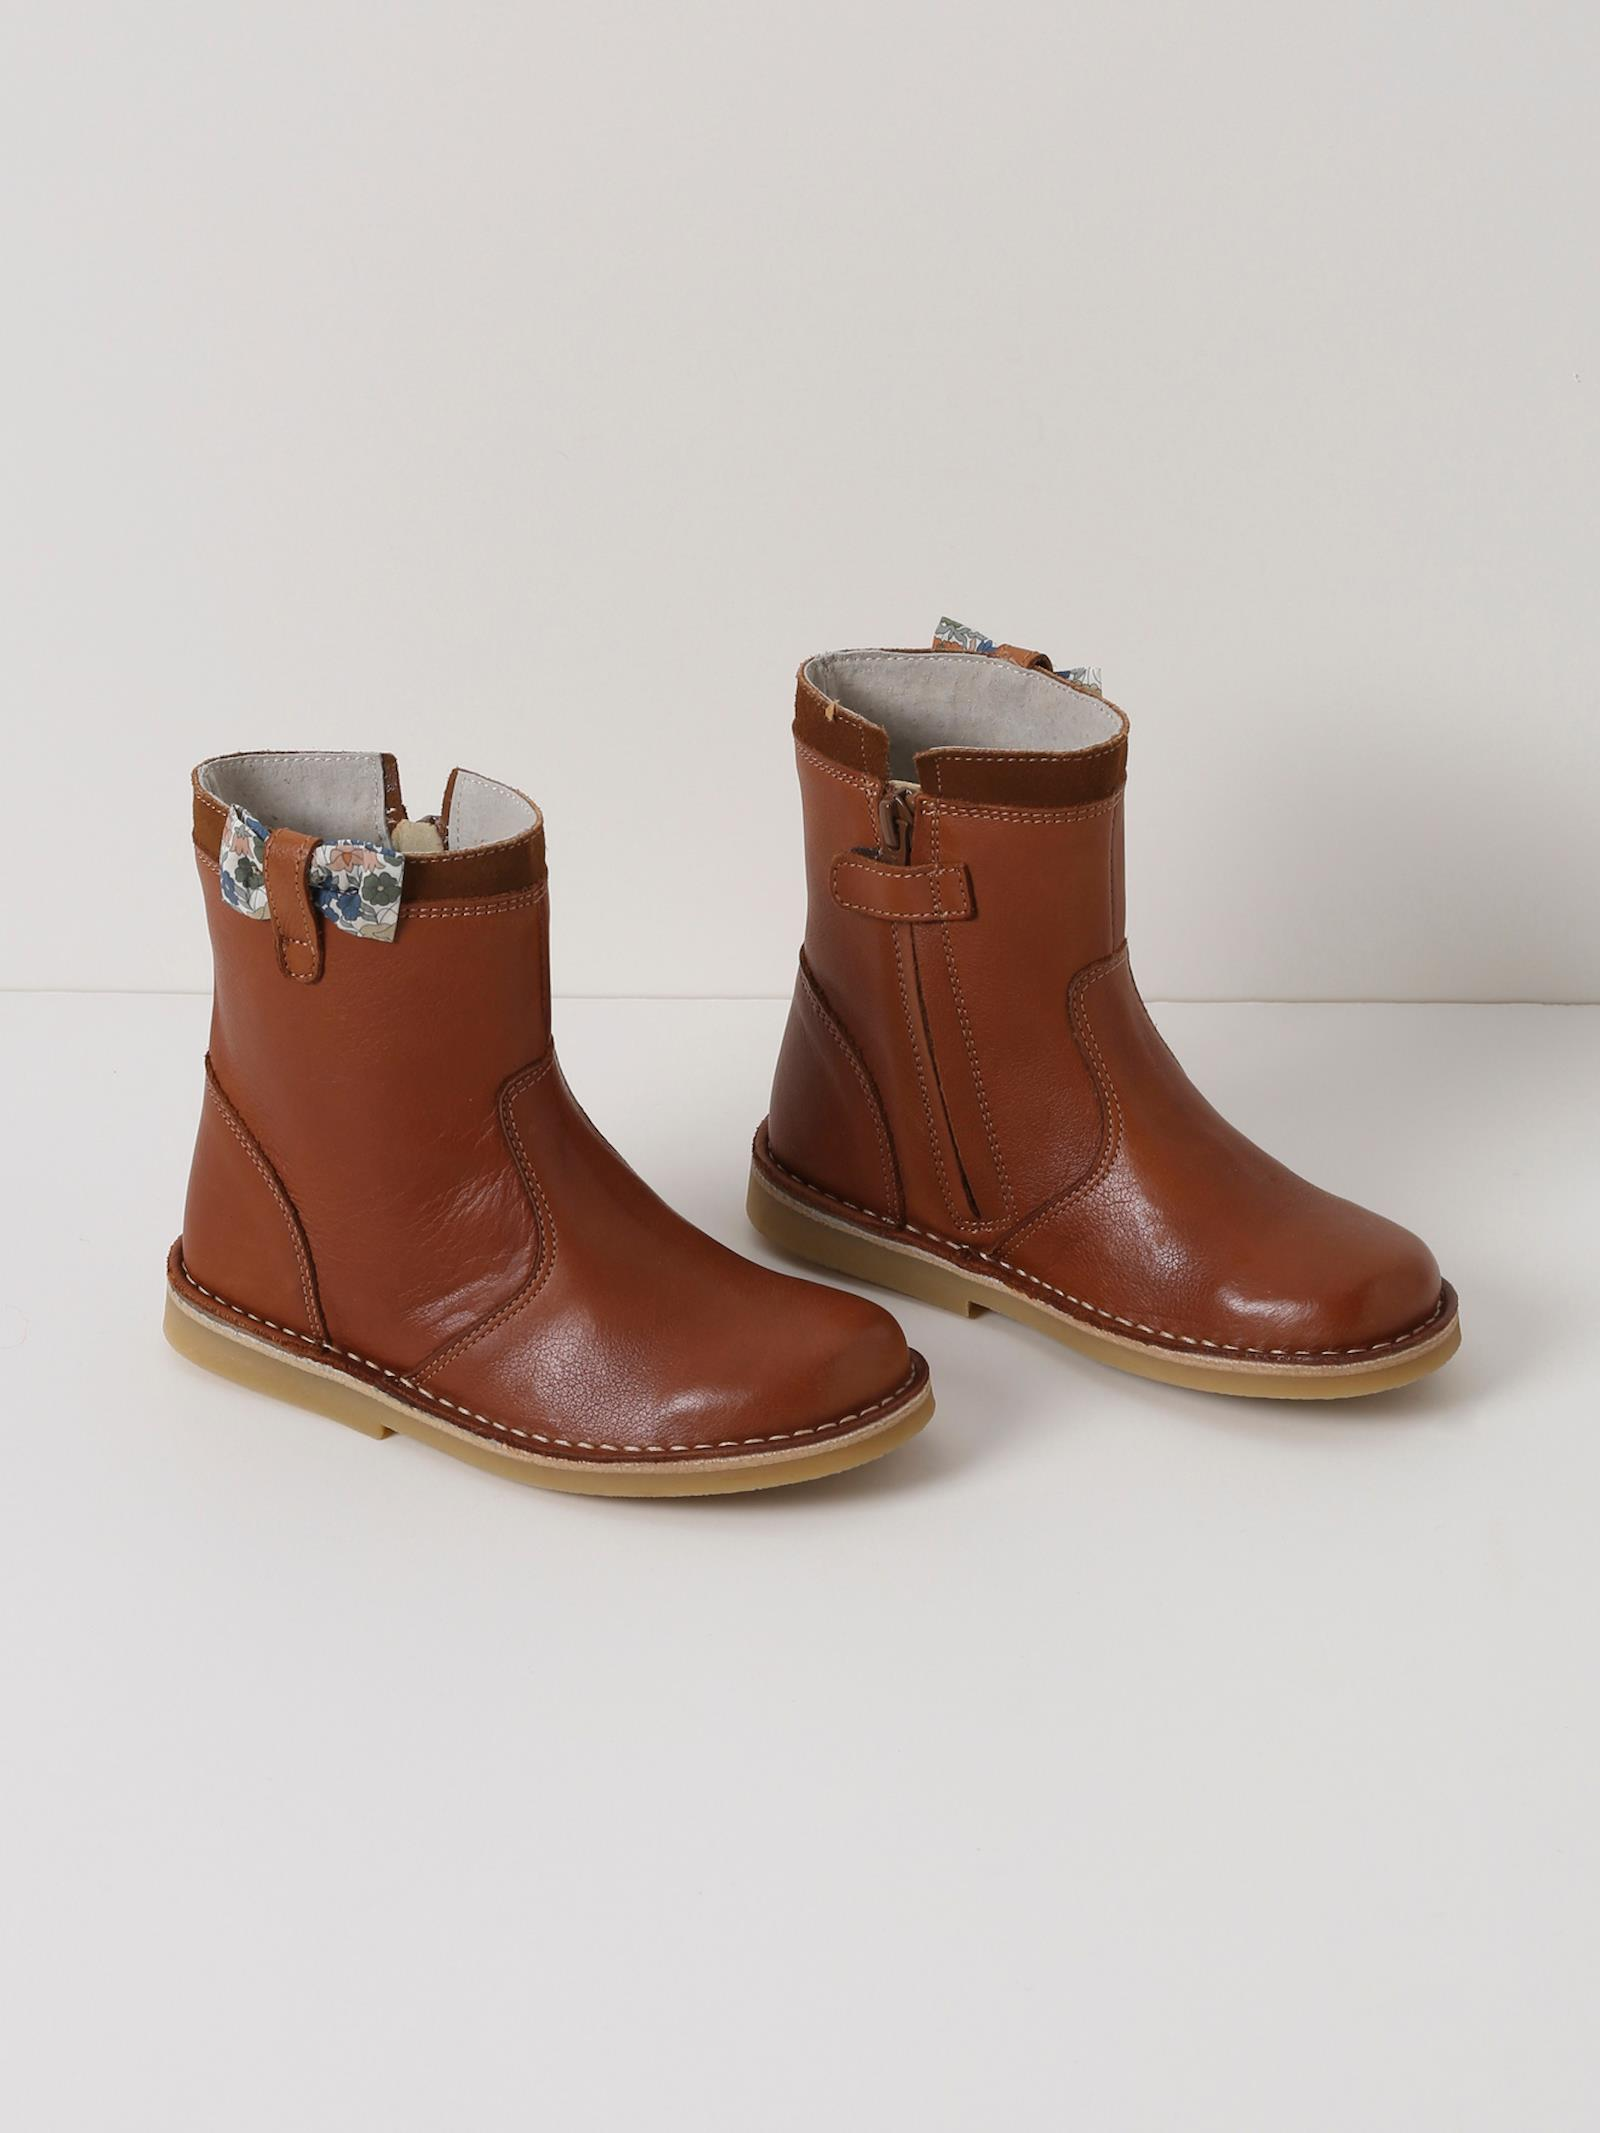 Chaussures fille, baskets fille, sandales, boots, babies